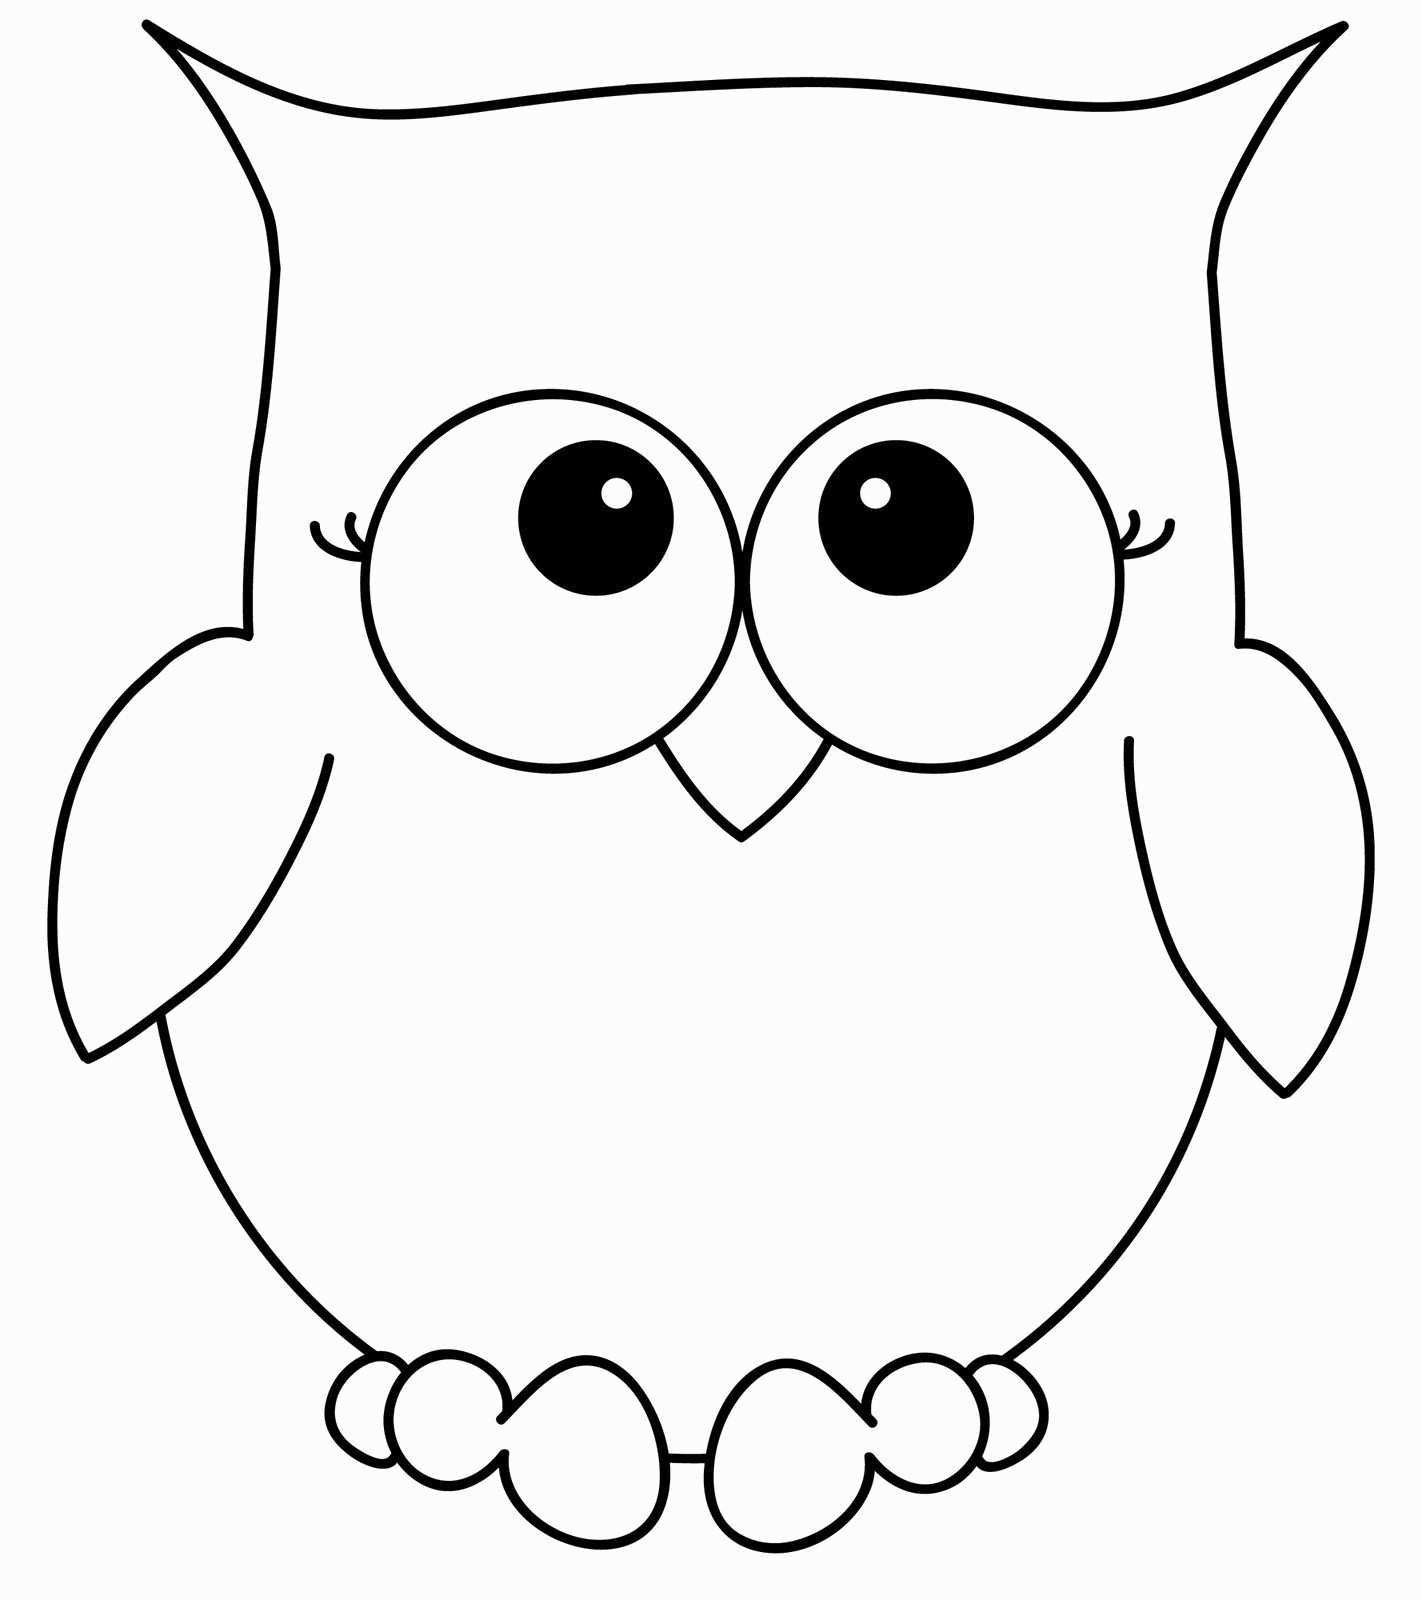 Easy Coloring Pages For Preschool Kids Free Printable Coloring